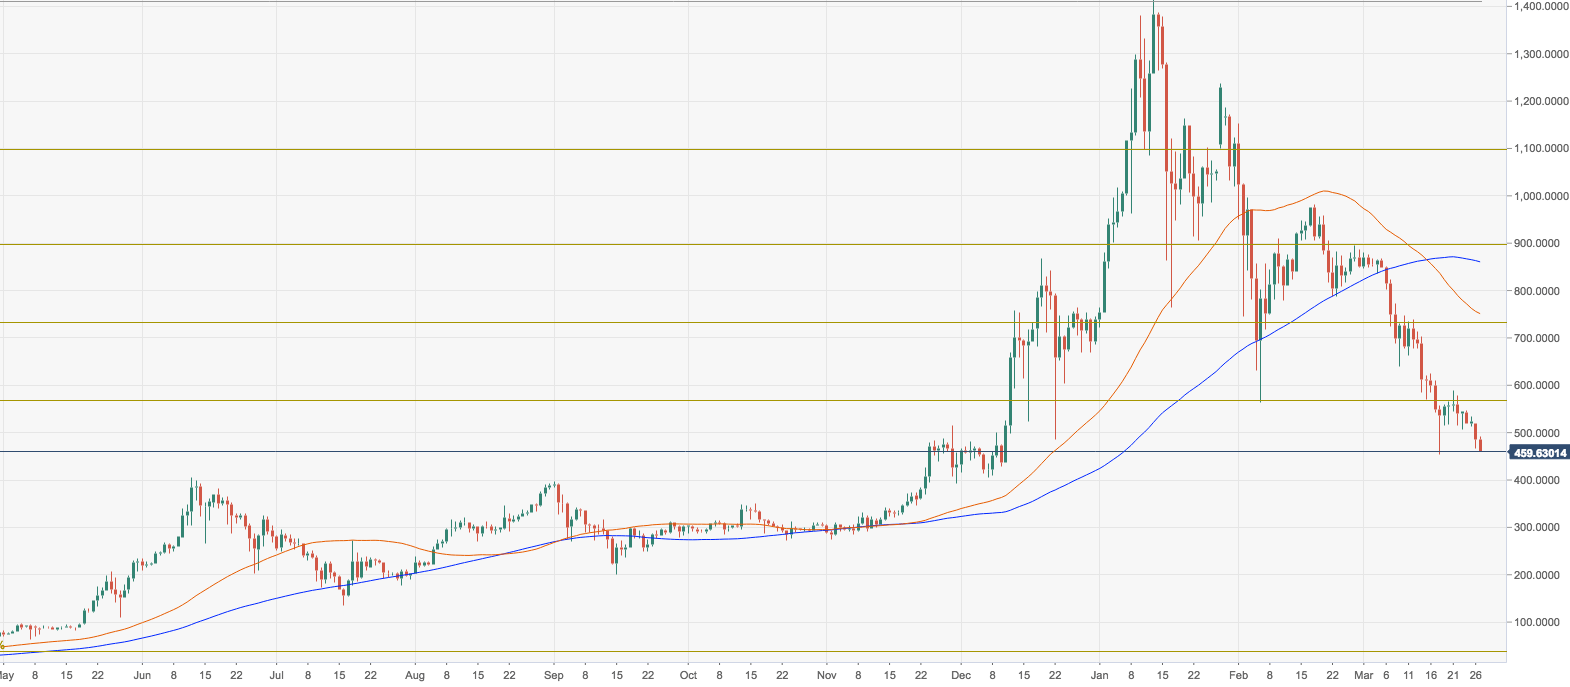 ETH/USD, the daily chart